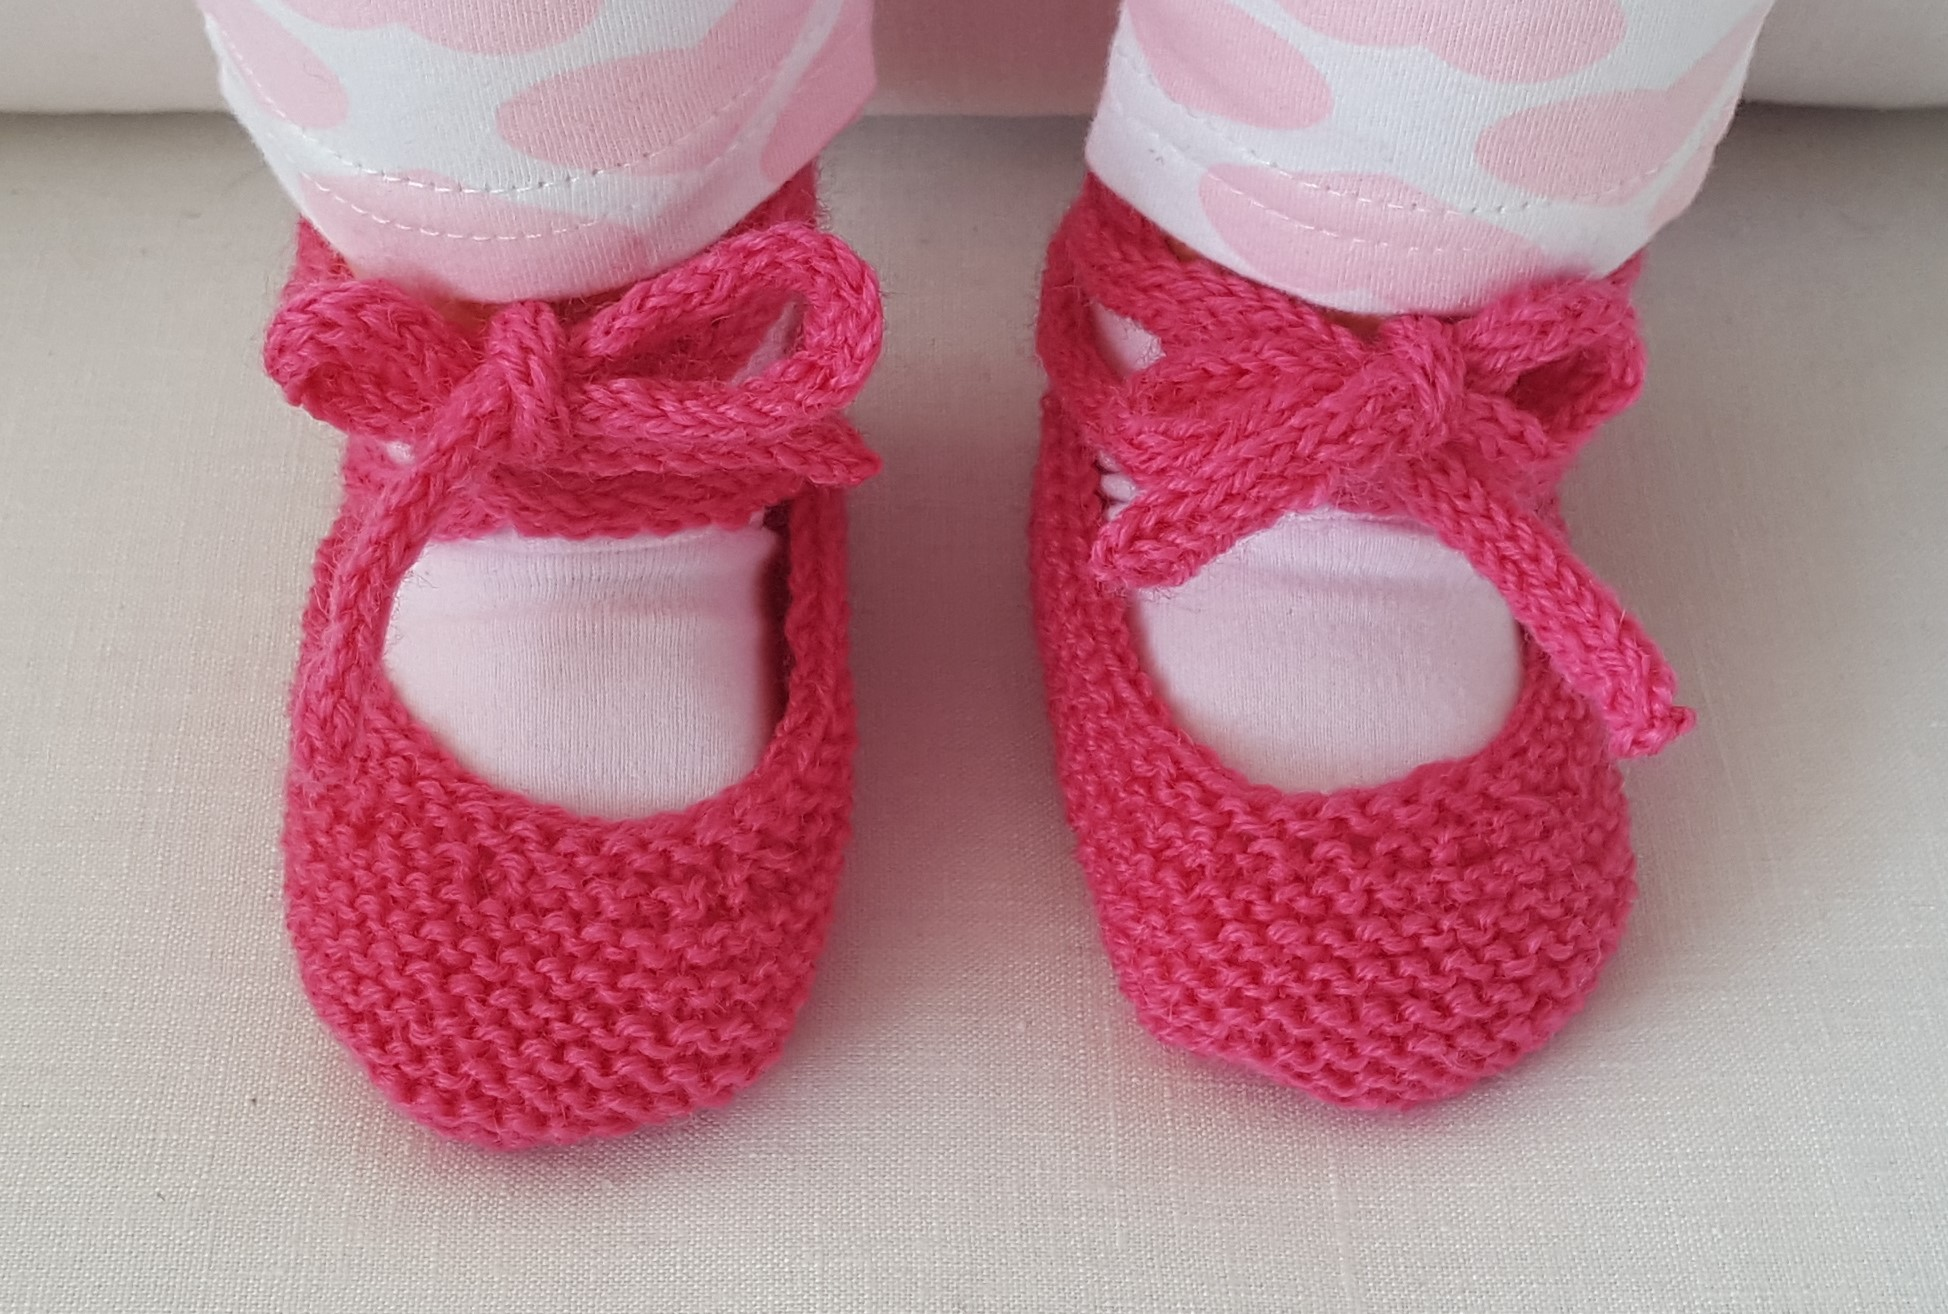 Knitting Patterns Online Knitting Patterns For Baby Shoes Clara